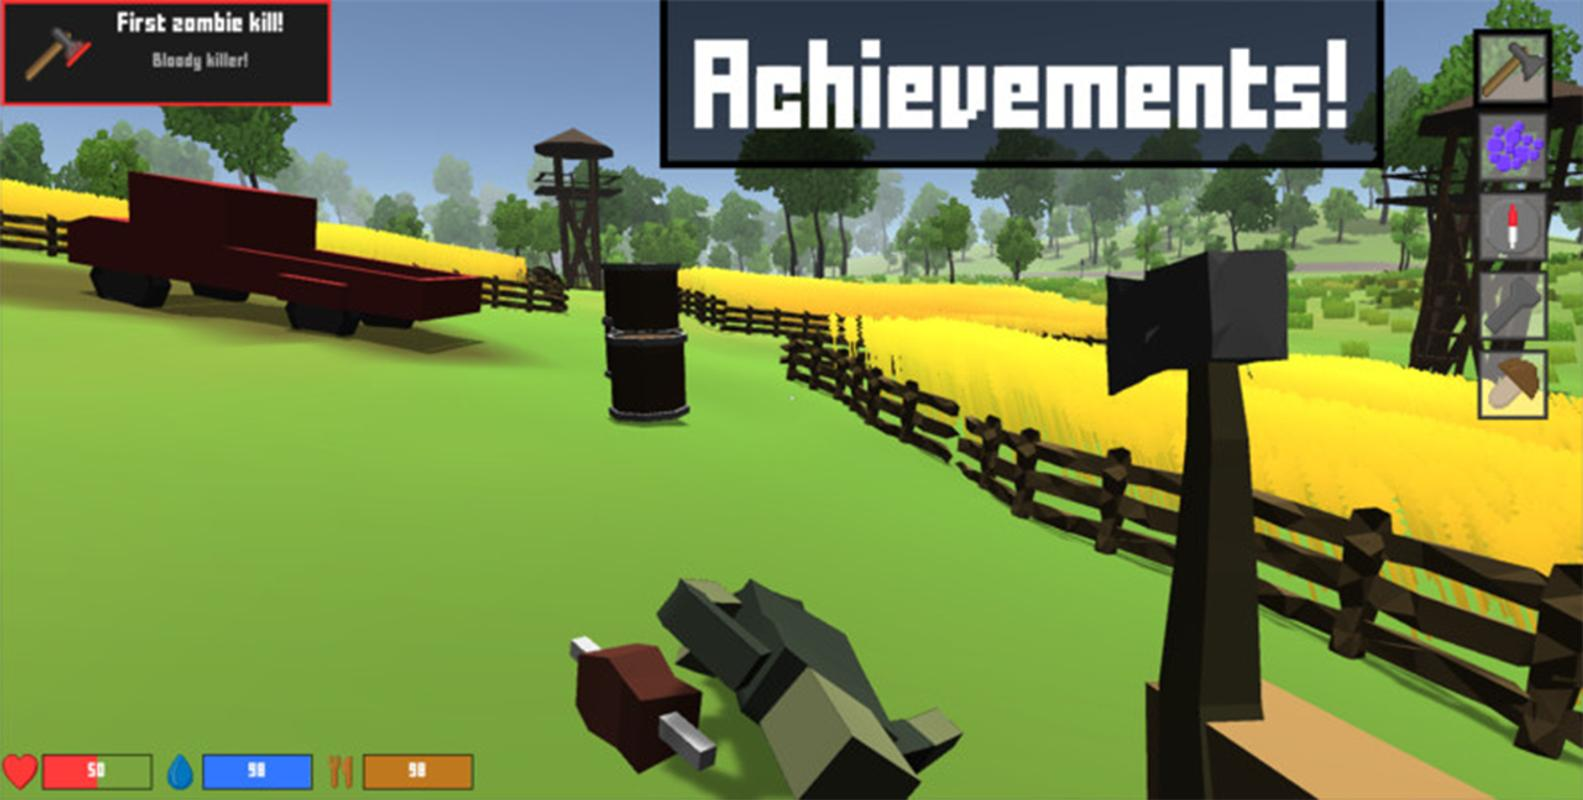 Pixel Block Survival Craft for Android - APK Download